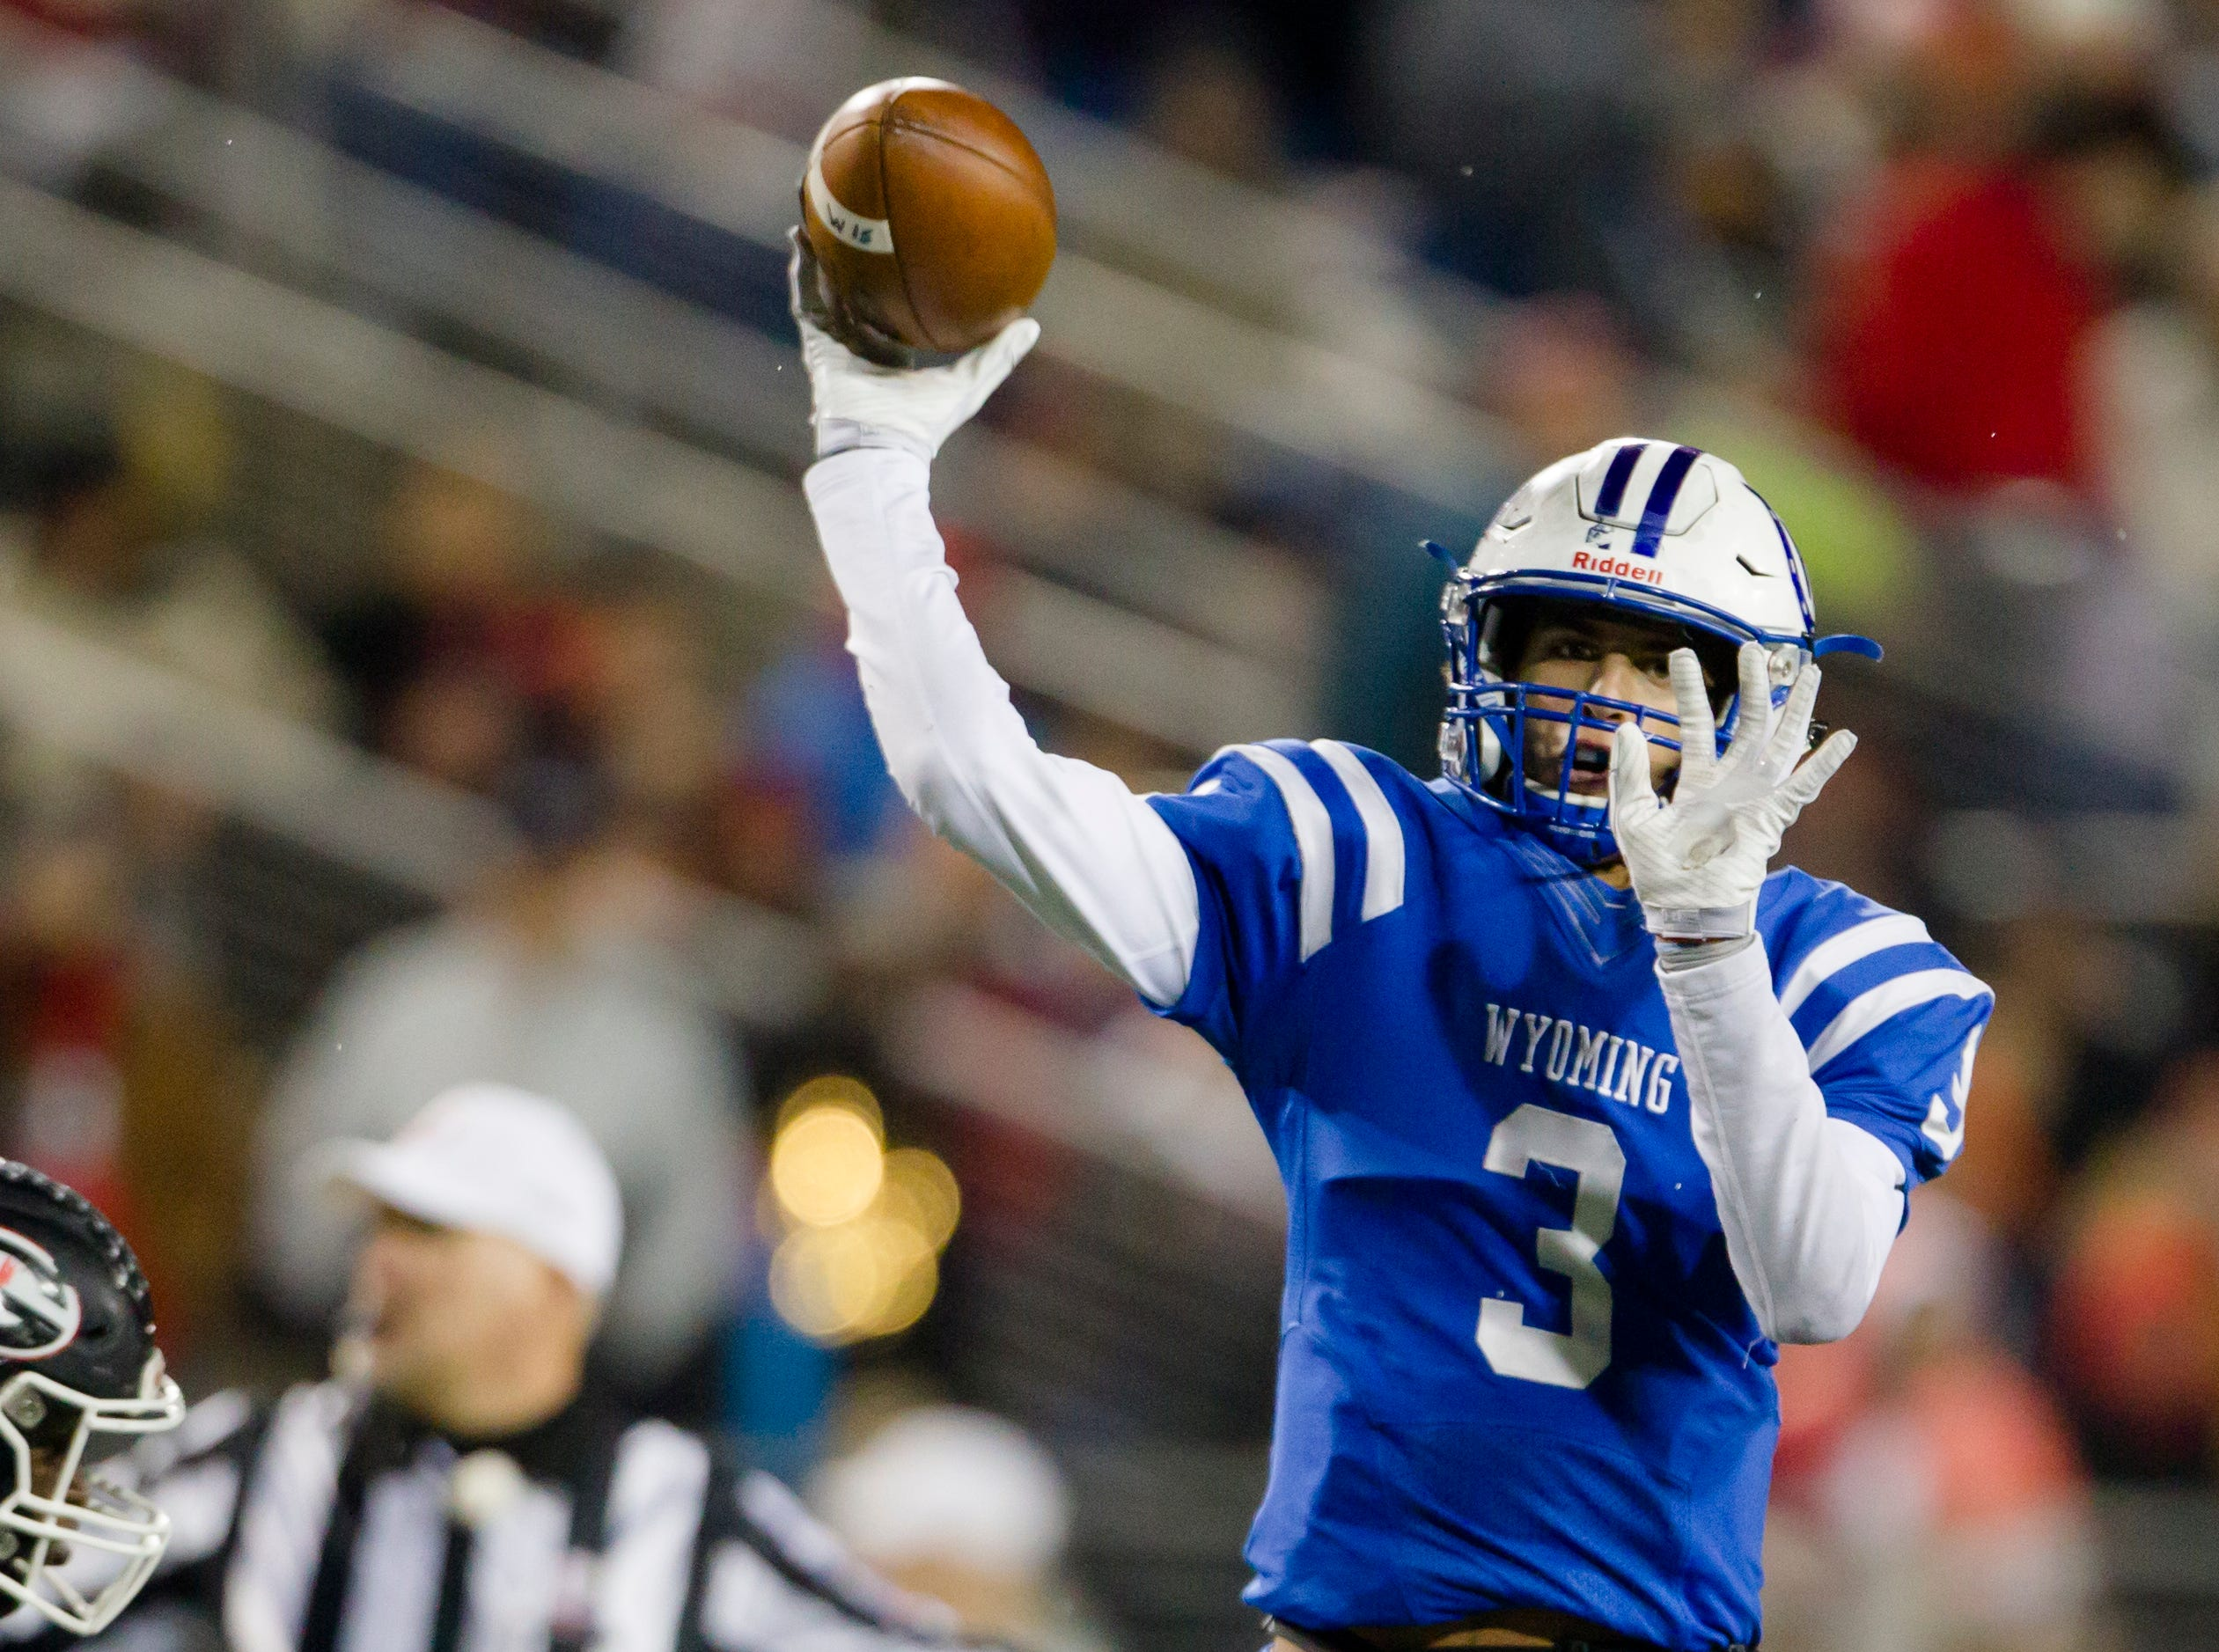 Wyoming's Evan Prater (3) throws a pass during the first half of the OHSAA Division IV State Championship football game between Wyoming and Girard on Saturday, Dec. 1, 2018, at Tom Benson Stadium in Canton.